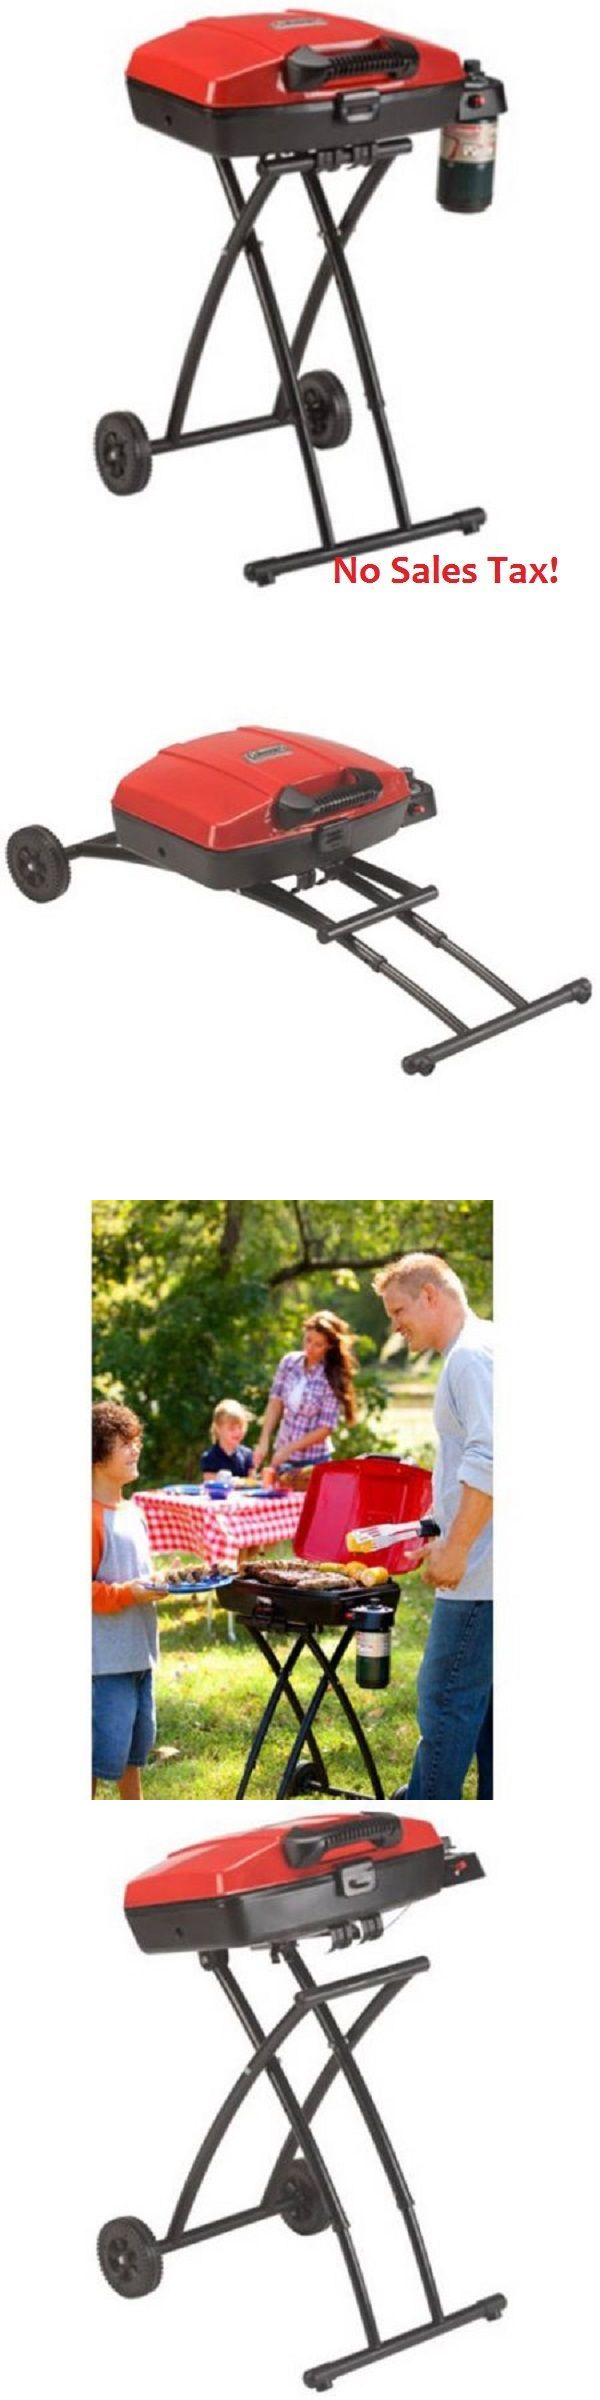 Camping BBQs and Grills 181388: Portable Gas Grill Propane Outdoor Cooking Barbecue Camping Picnic Backyard Red -> BUY IT NOW ONLY: $109.99 on eBay!